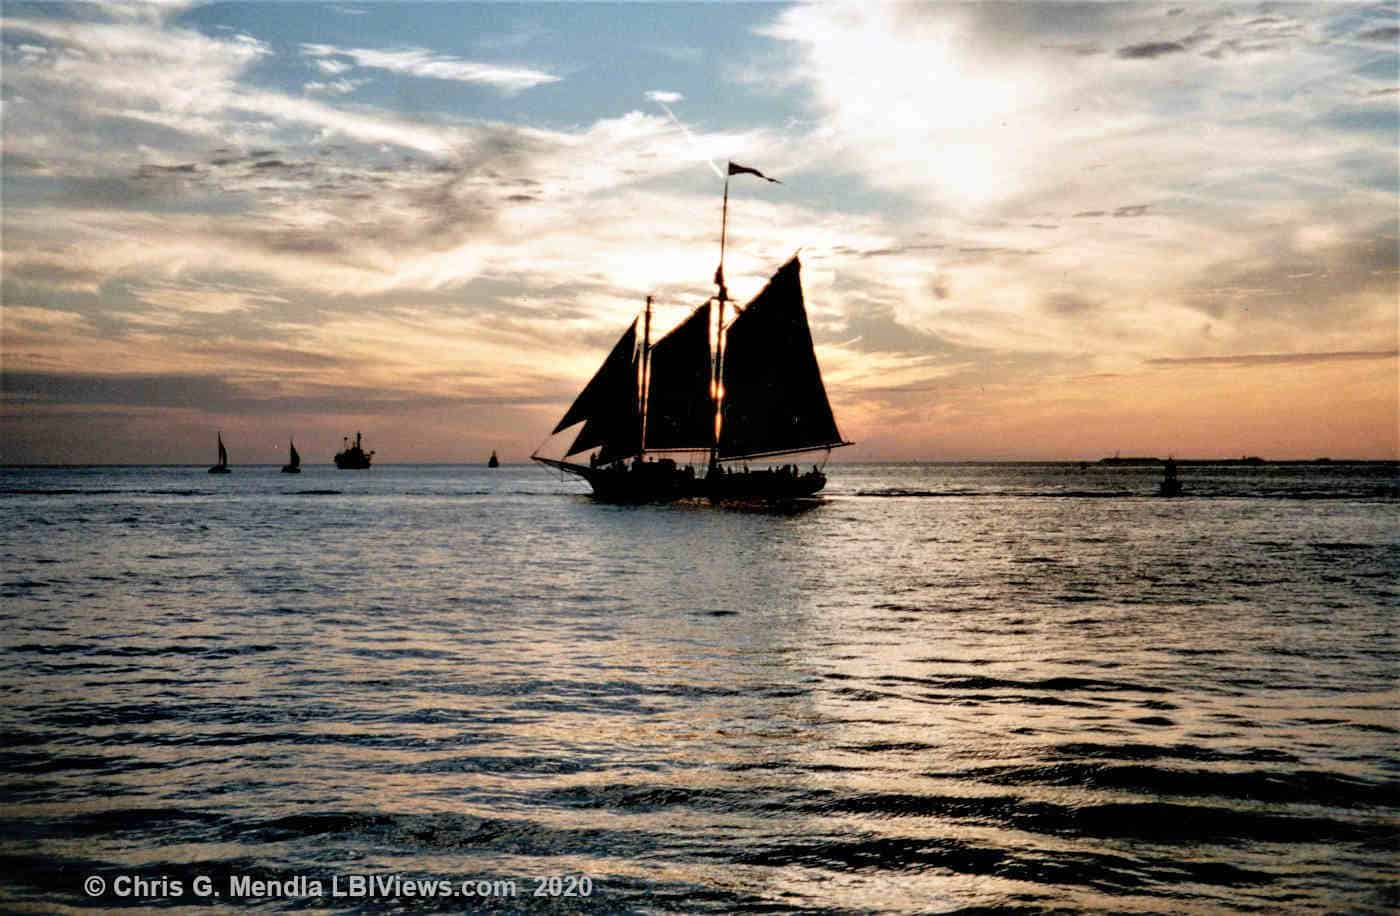 The A. J. Meerwald under sail at sunset off Beach Haven 2003